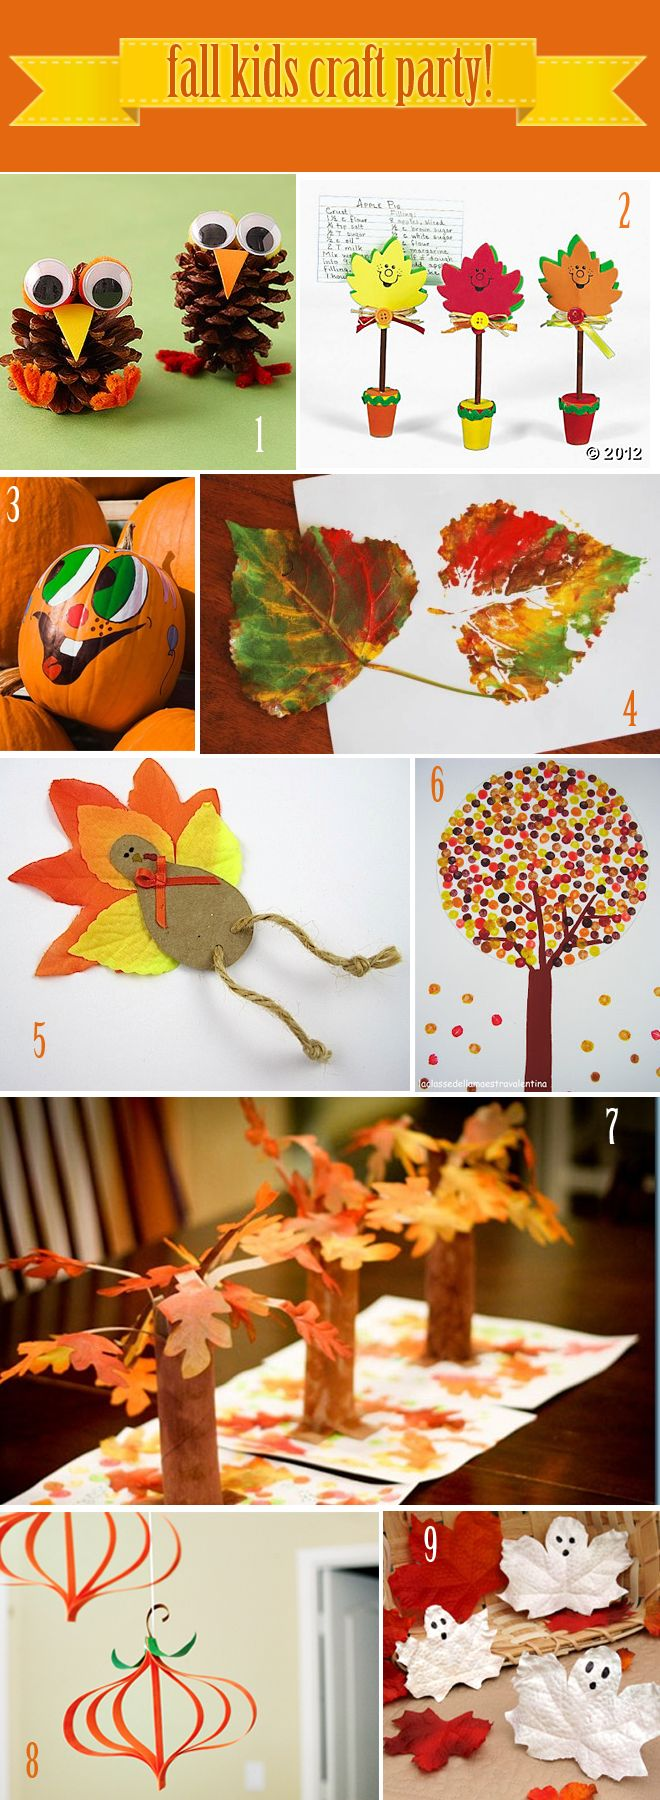 Fall Kids Craft Ideas :}